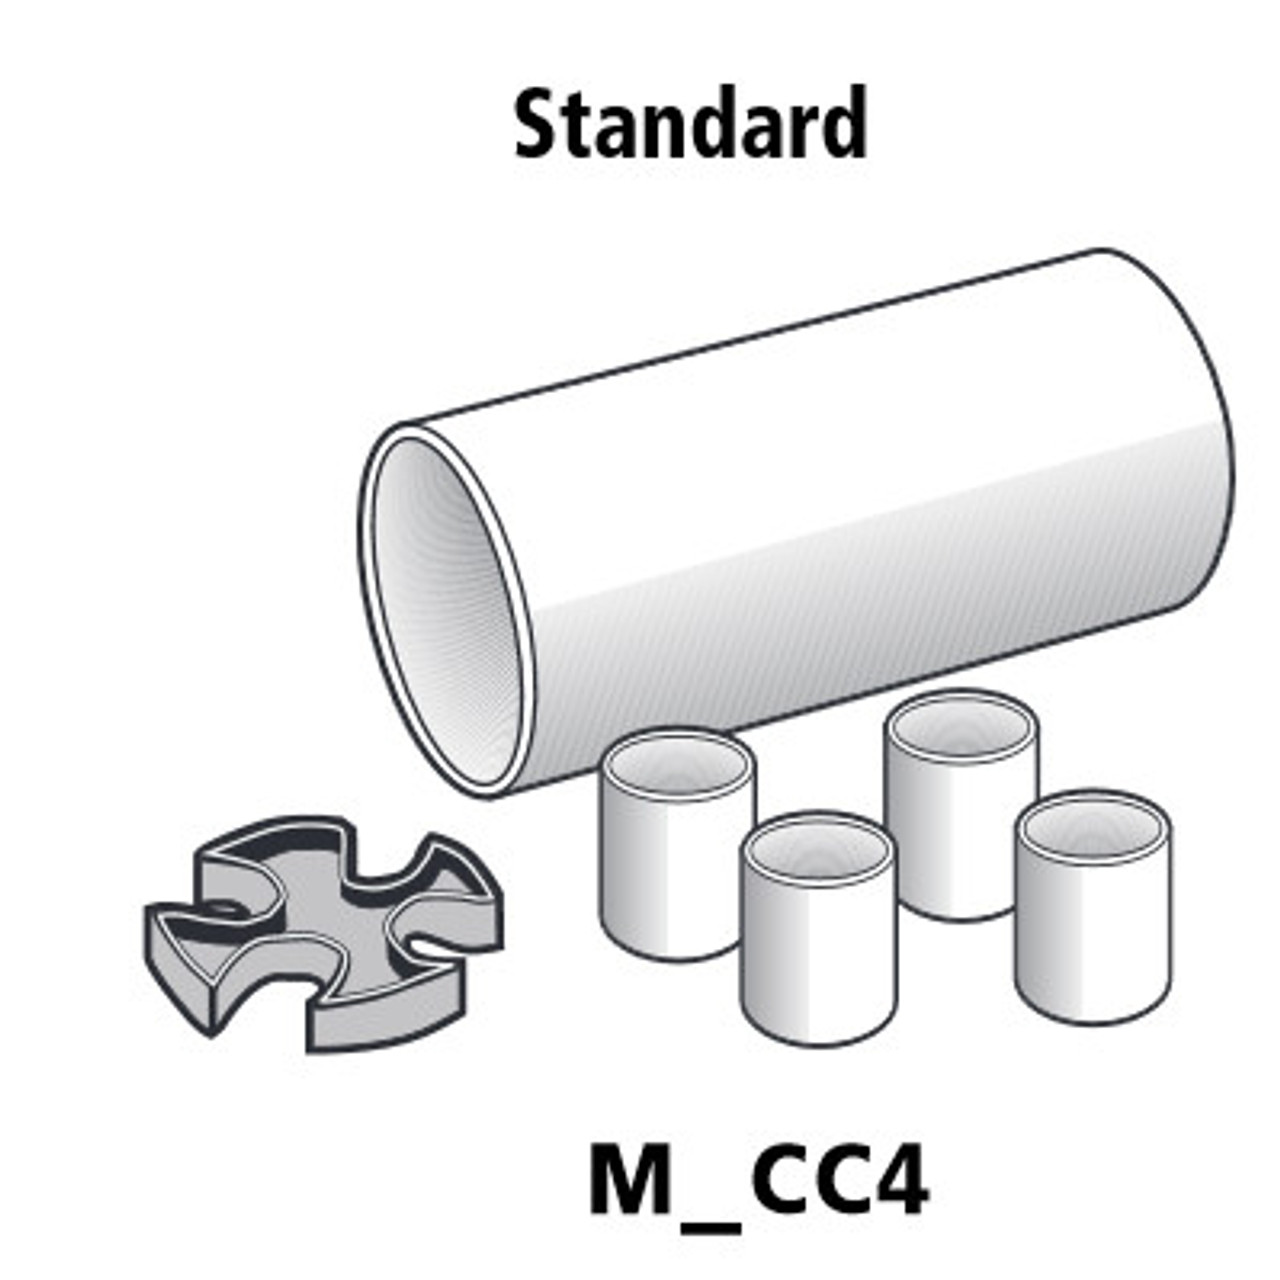 Multi-Cell Couplings